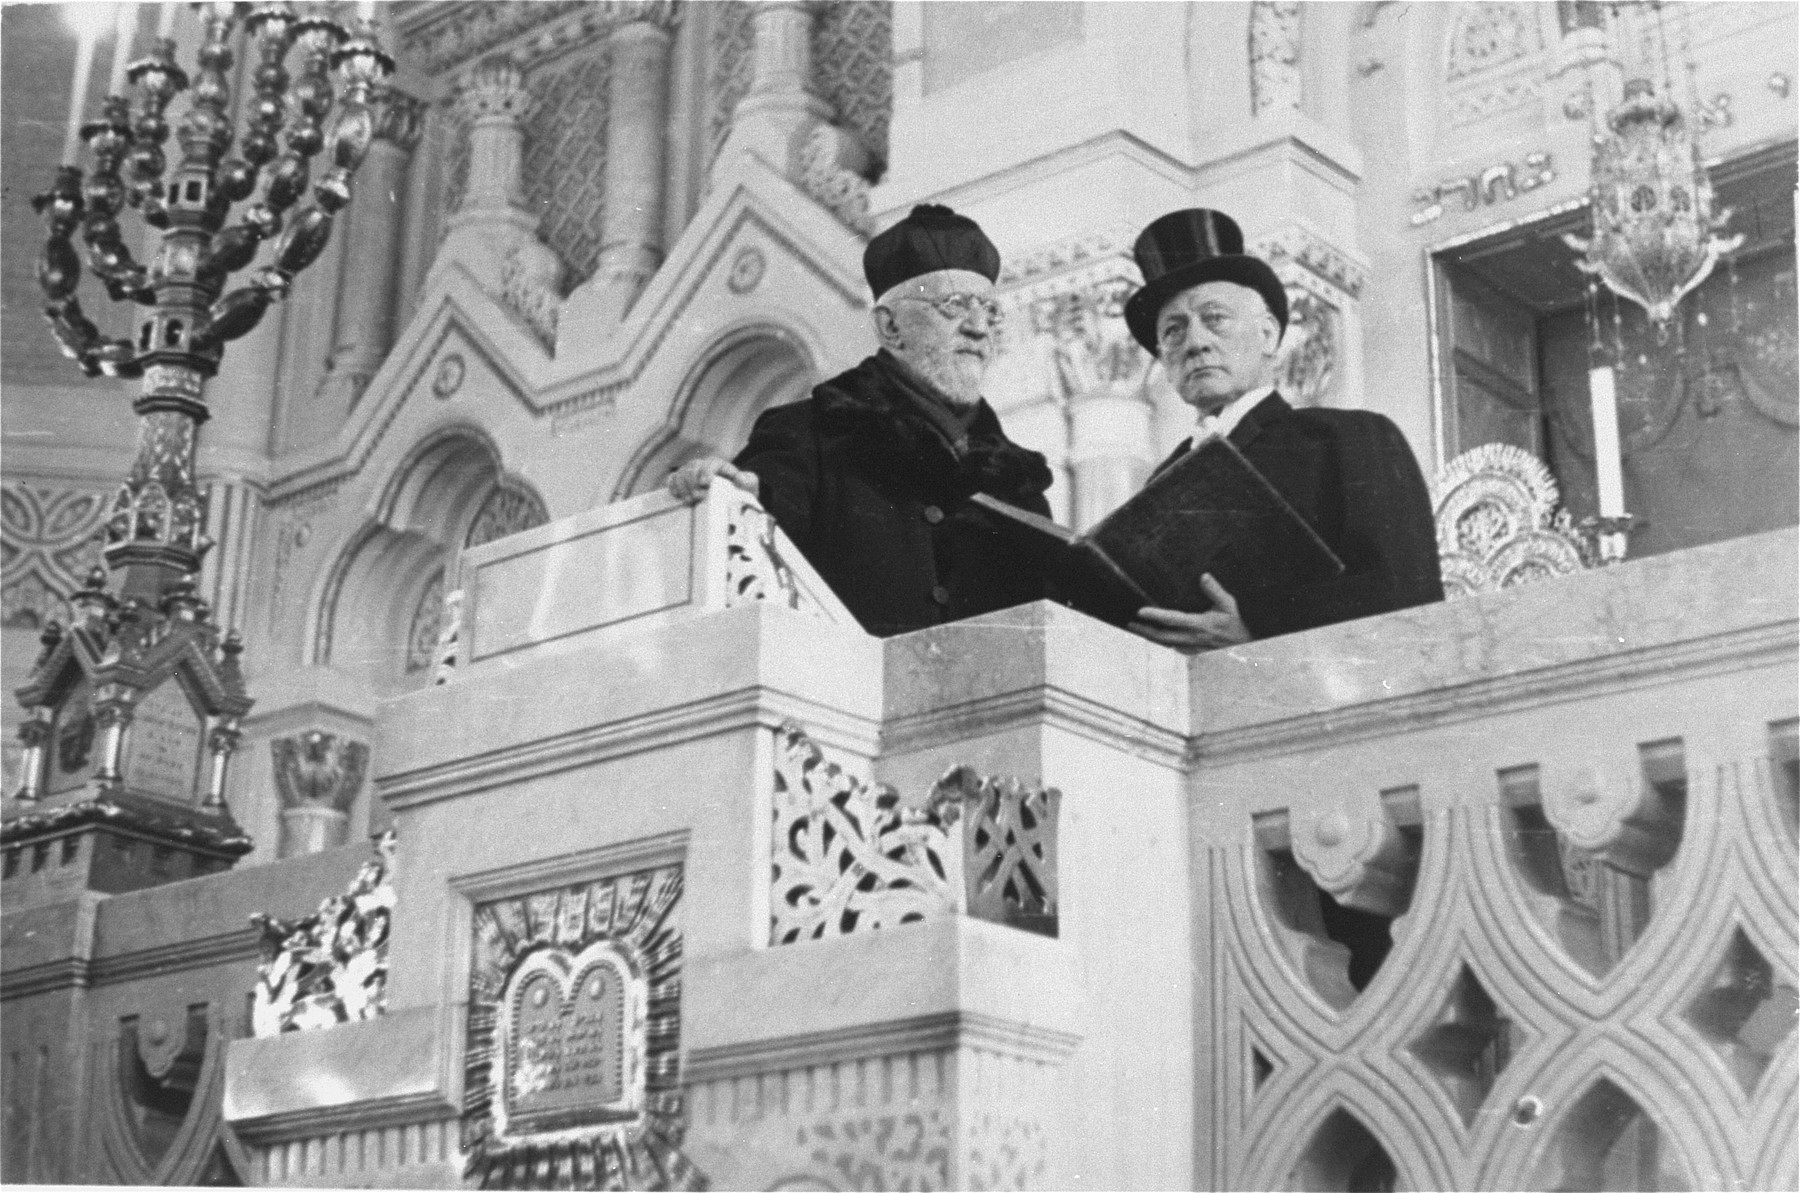 Rabbi Immanuel Low (left) and actor Oszkar Beregi (right) stand on the bimah [podium] of the main synagogue in Szeged.